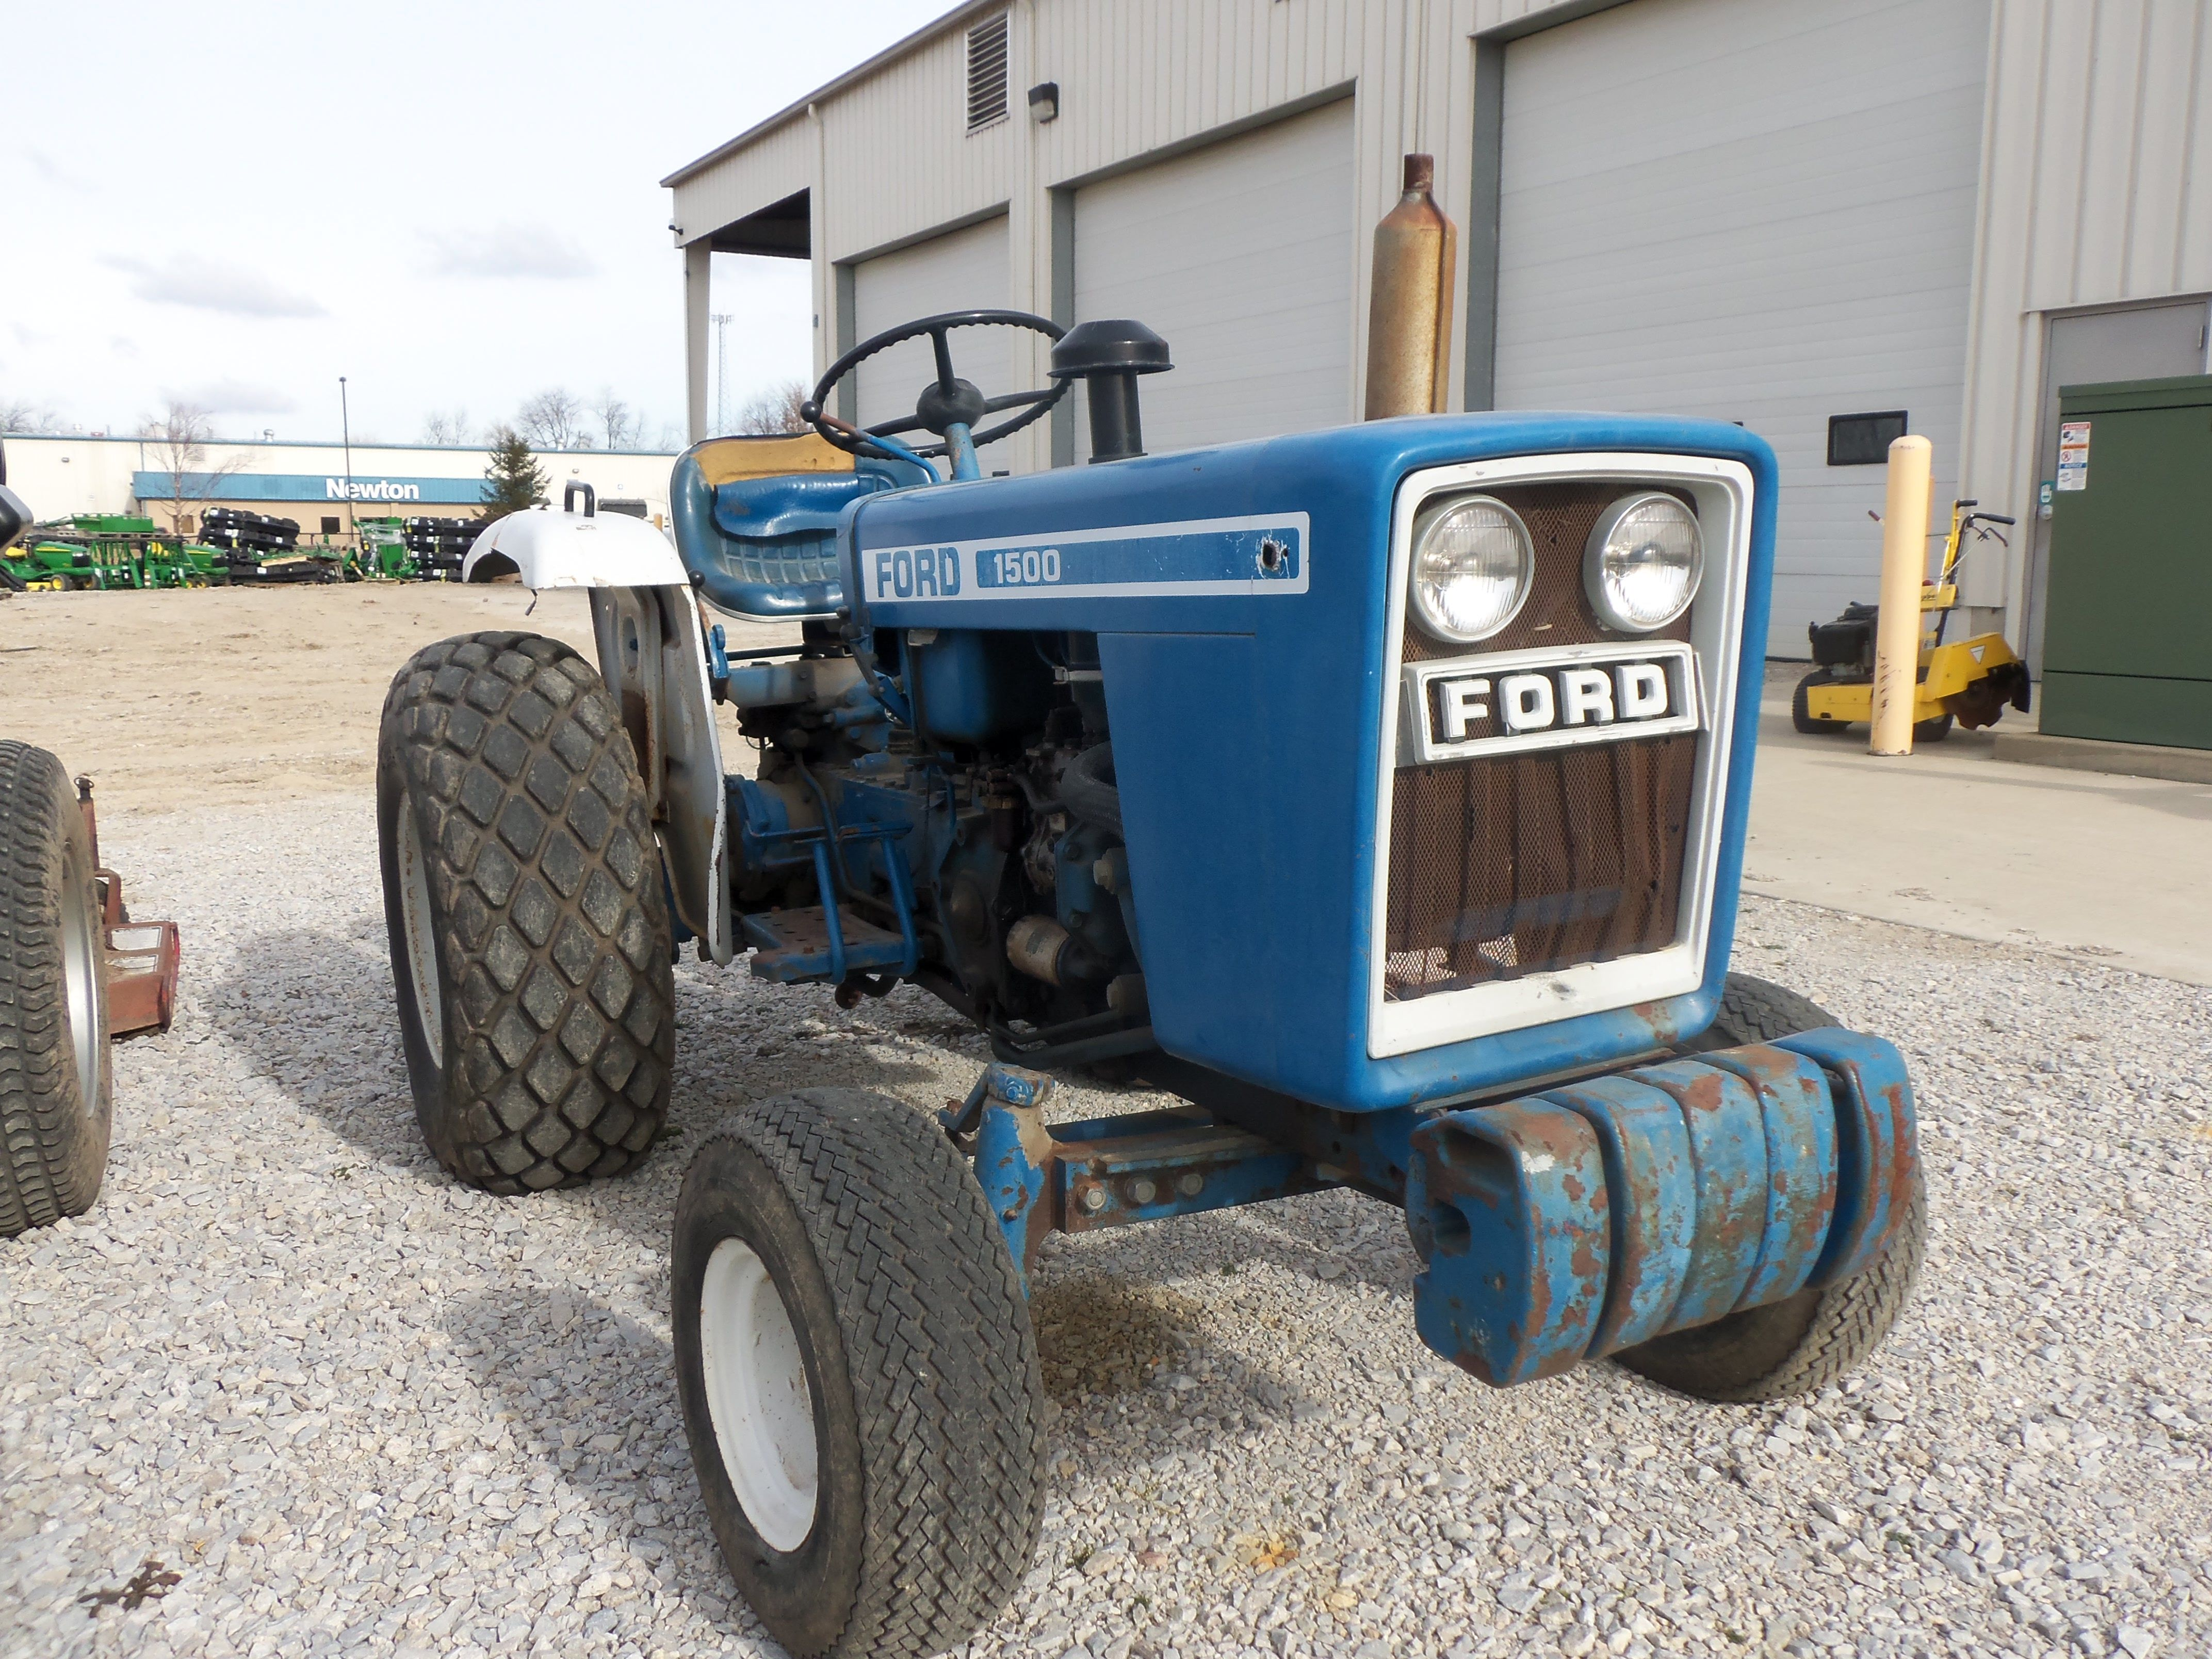 ford 1500 compact diesel tractor [ 4288 x 3216 Pixel ]